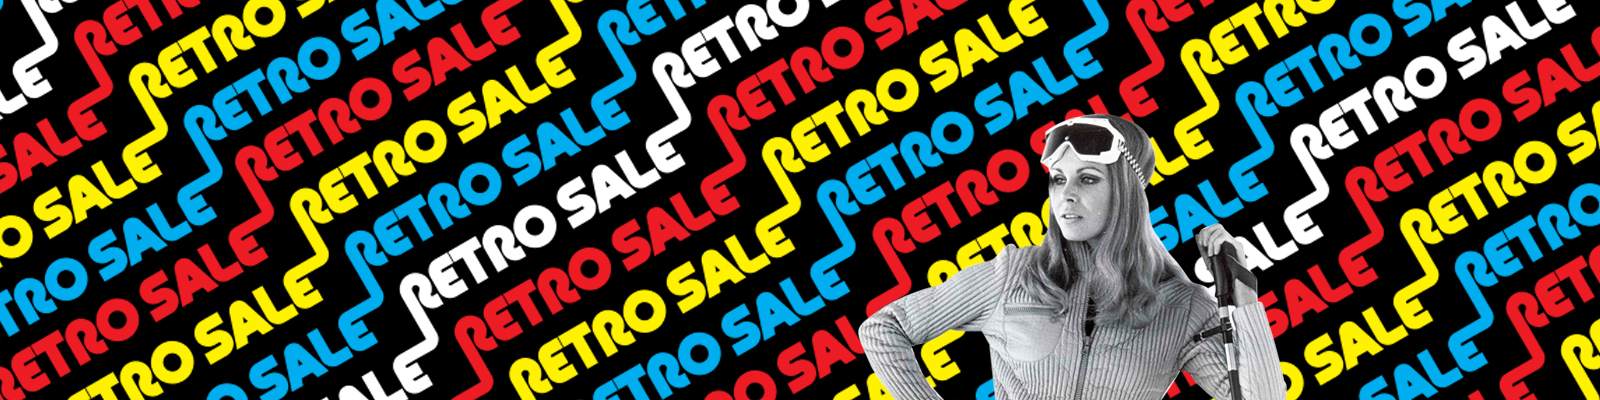 Retro Sale on Now!